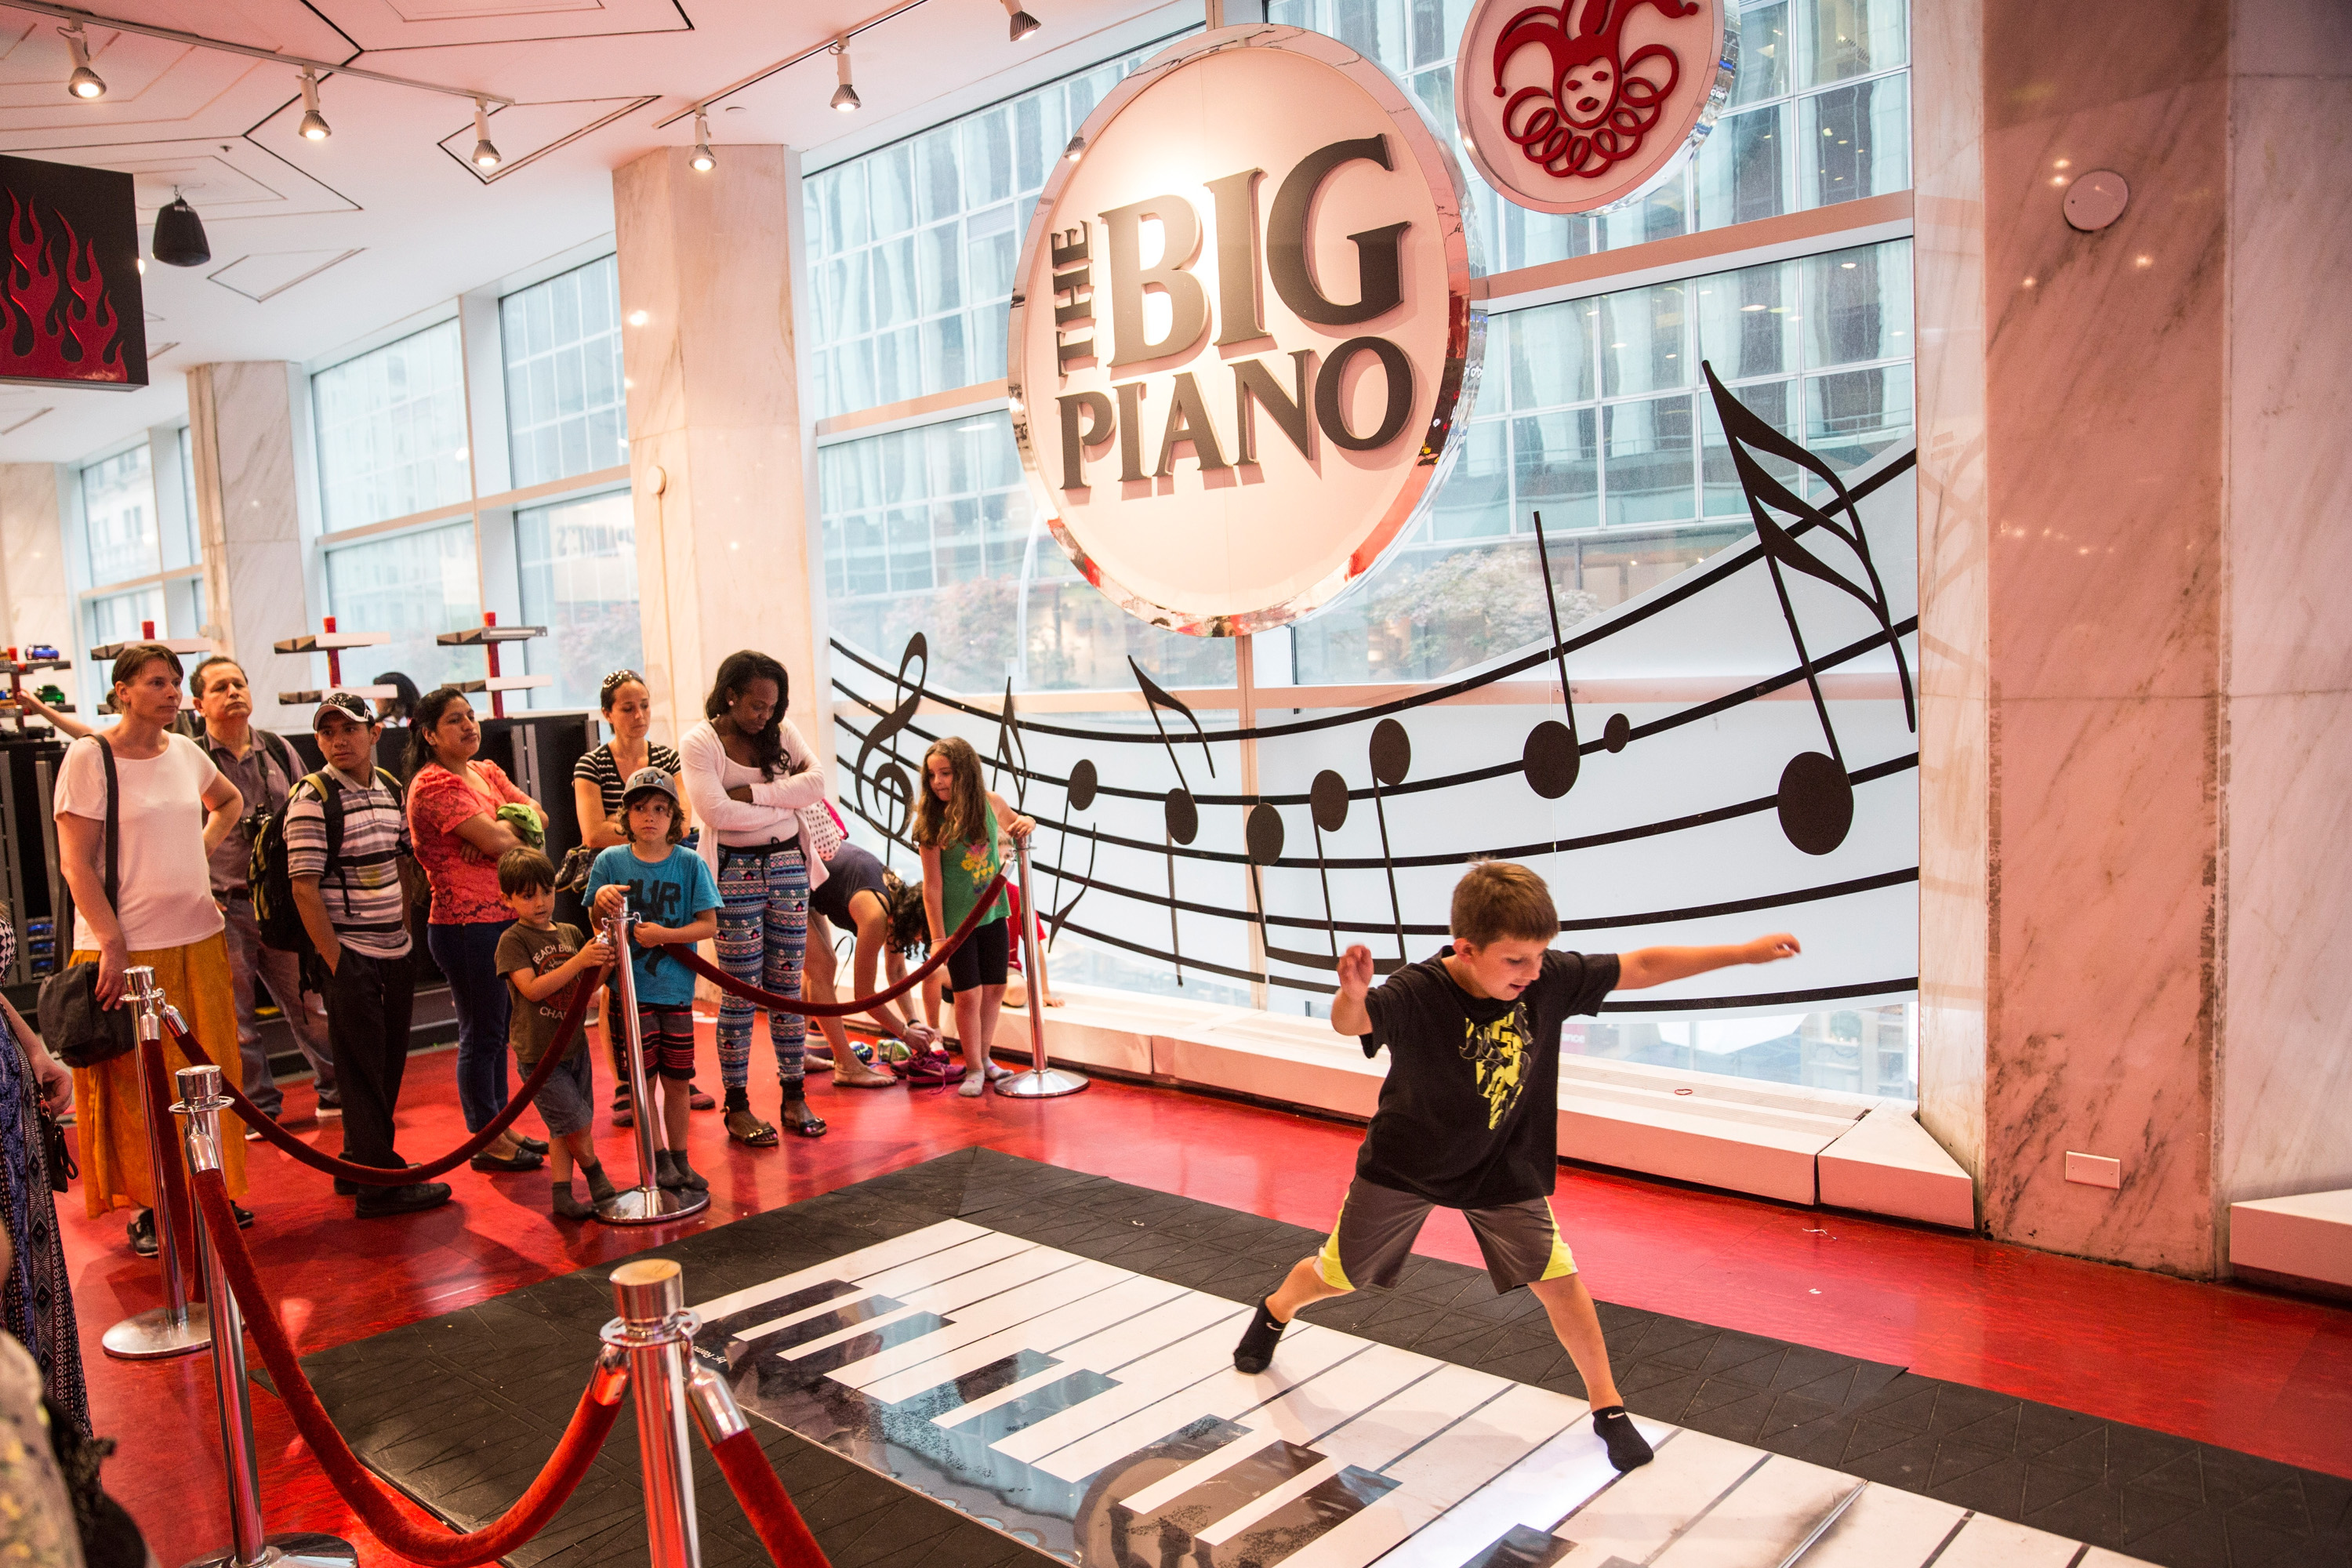 Children play on the  Big Piano,  made famous by the movie Big, in FAO Schwarz toy store on July 14, 2015 in New York City.